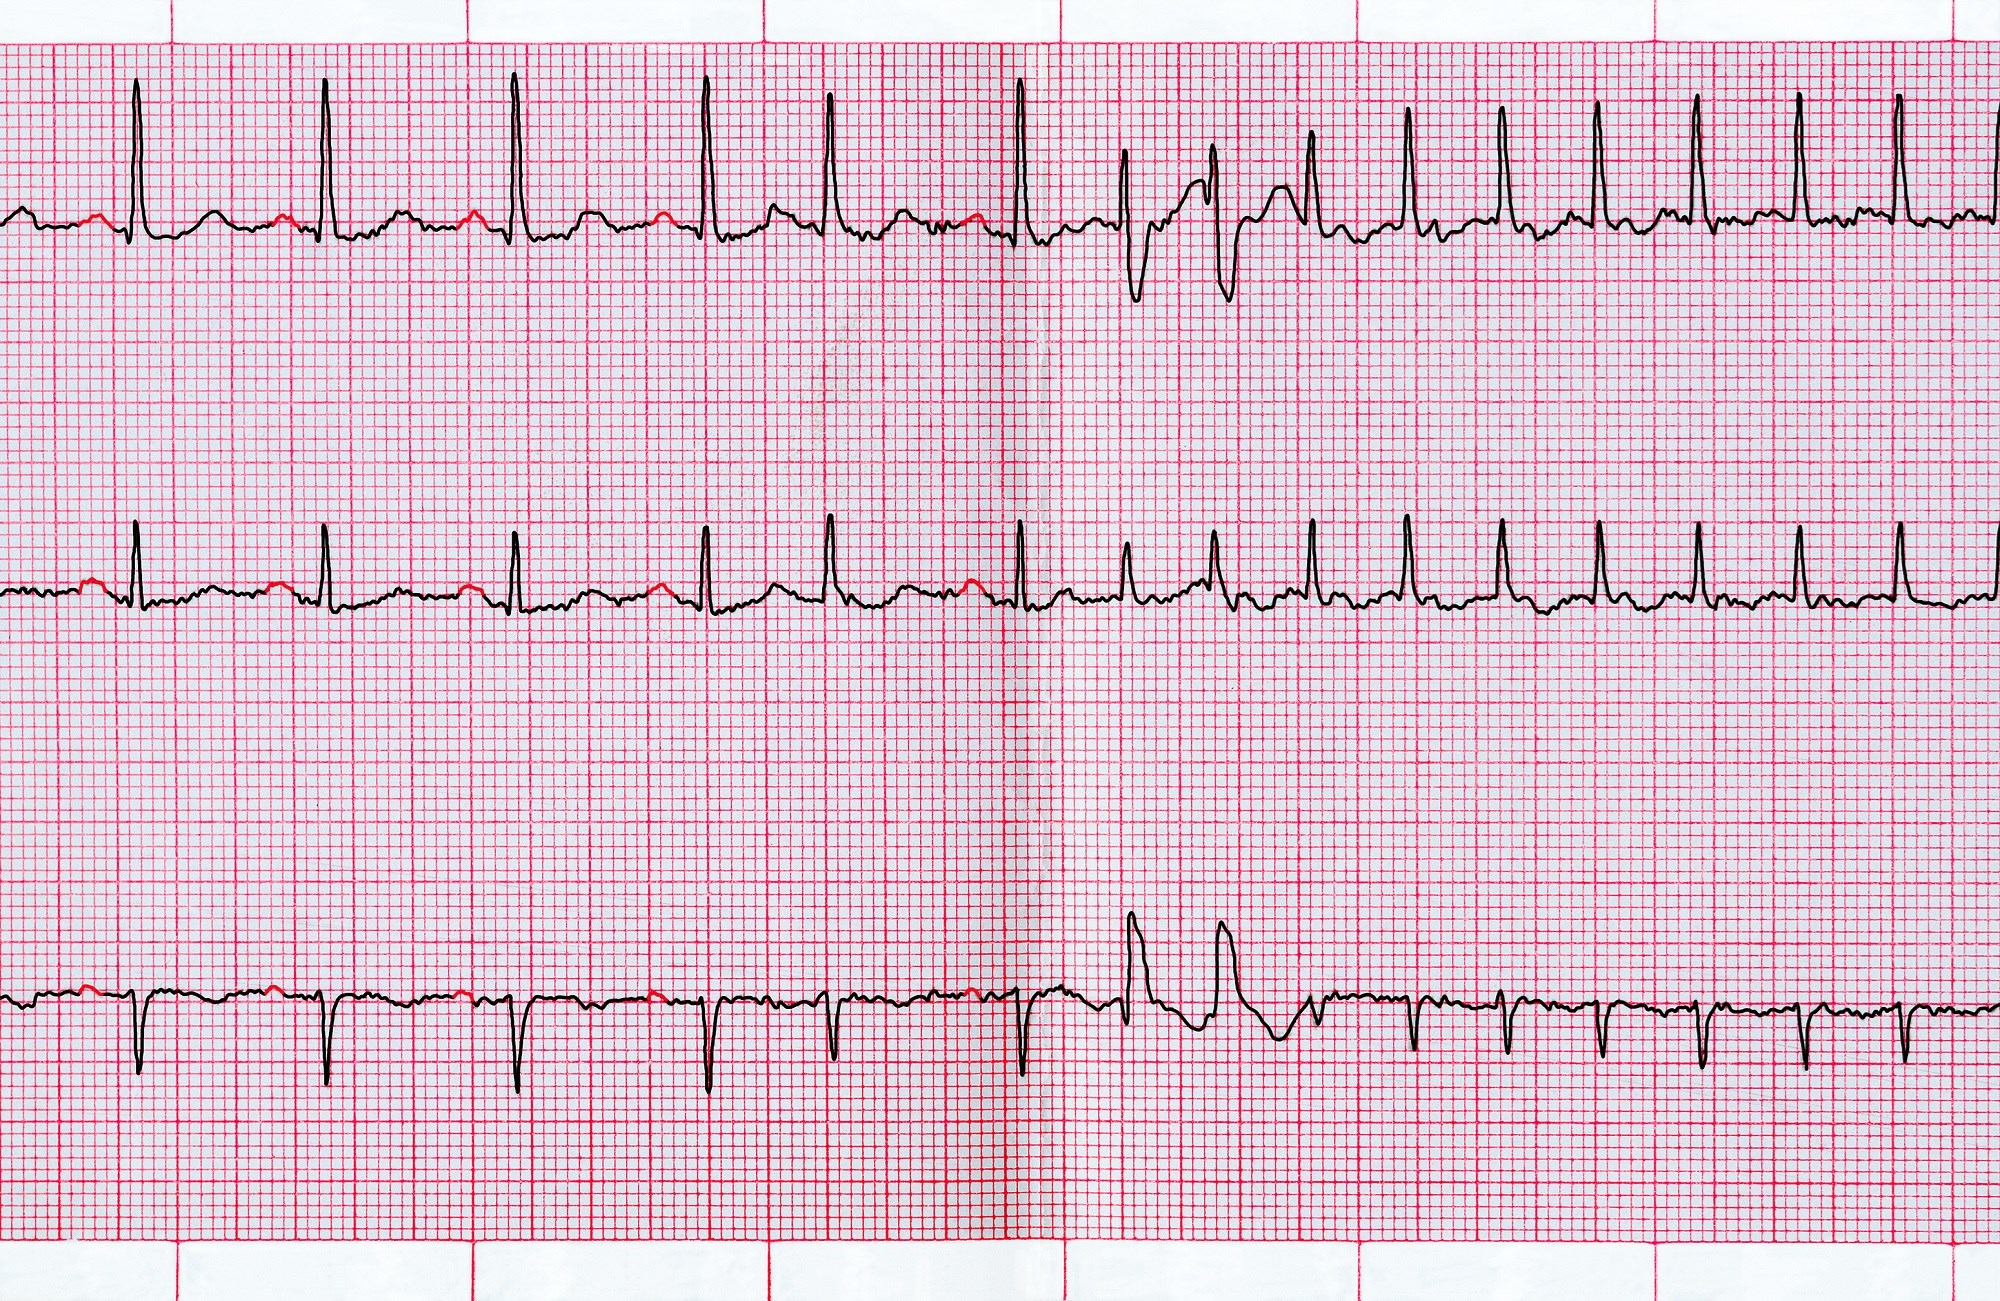 The troponin-T biomarker demonstrated the strongest association with sudden death in patients with atrial fibrillation.